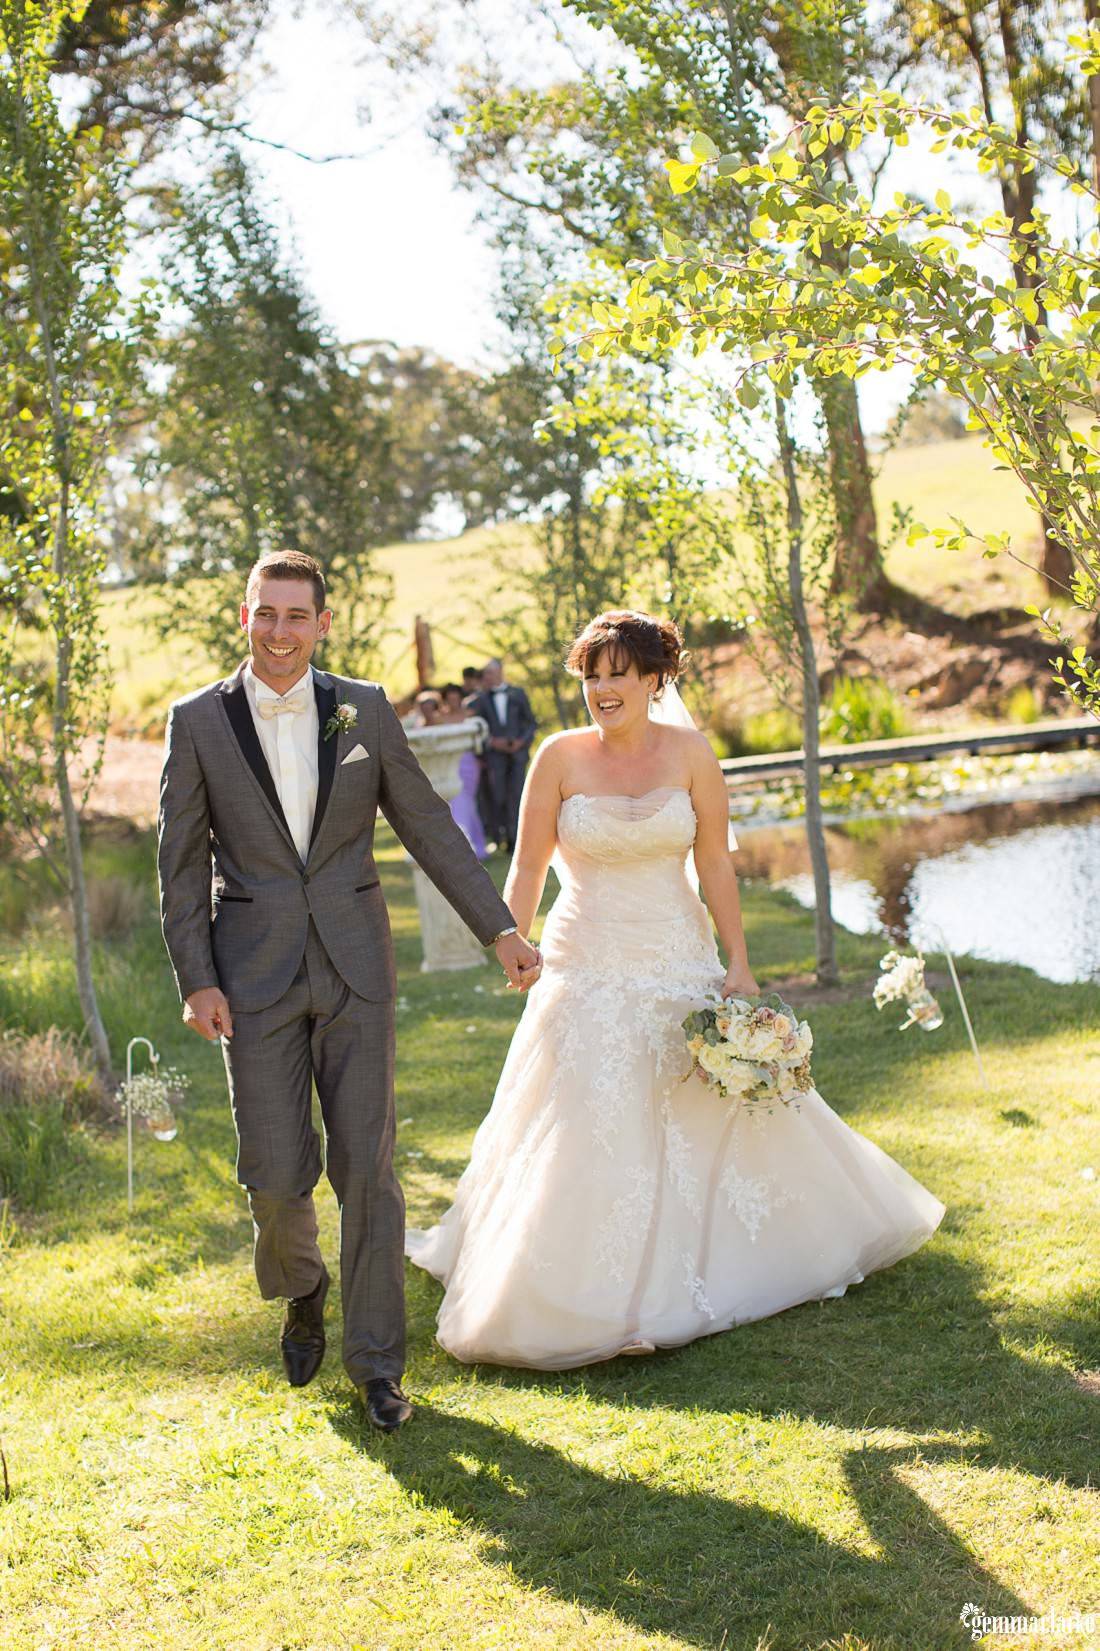 gemmaclarkephotography_mali-brae-wedding_southern-highlands-wedding_tahnae-and-james_0067